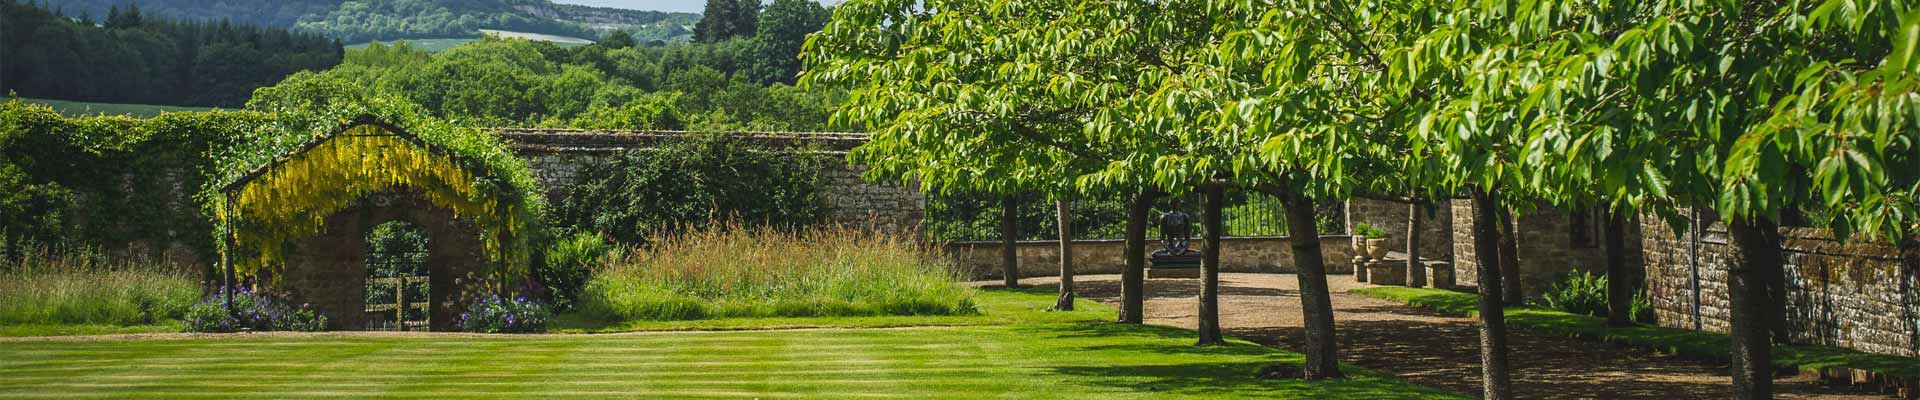 Image of the stunning gardens at Cowdray House